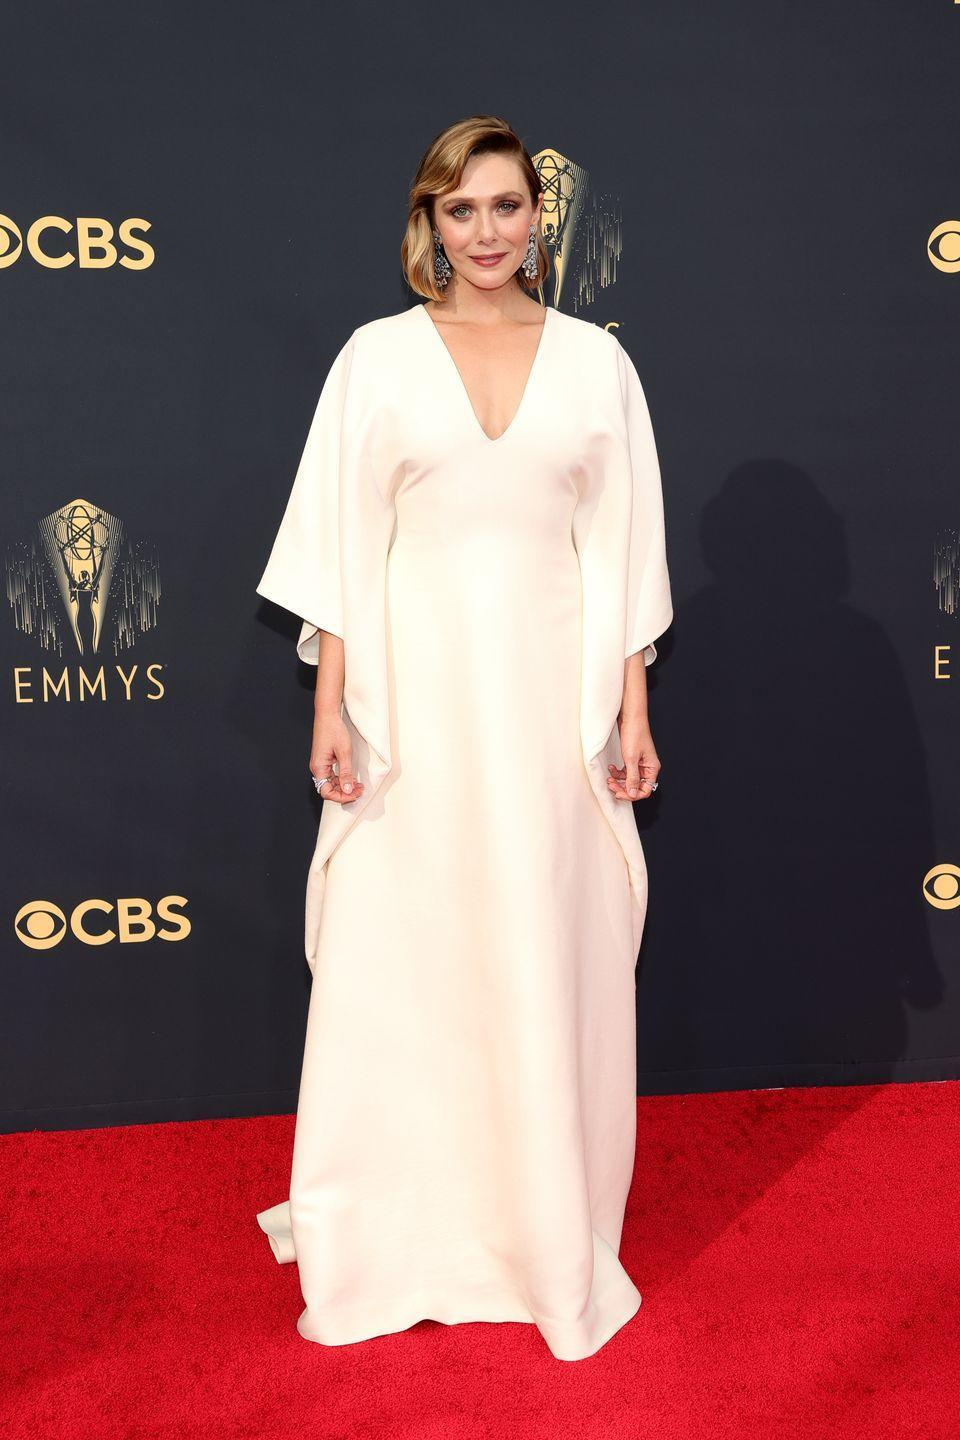 <p><strong>What:</strong> The Row and Chopard</p><p><strong>Why: </strong>Olsen reps her fam in the chicest way possible: a flowing white gown with cape-like sleeves by the Row, designed by her sisters Mary-Kate and Ashley Olsen<strong>.</strong></p>